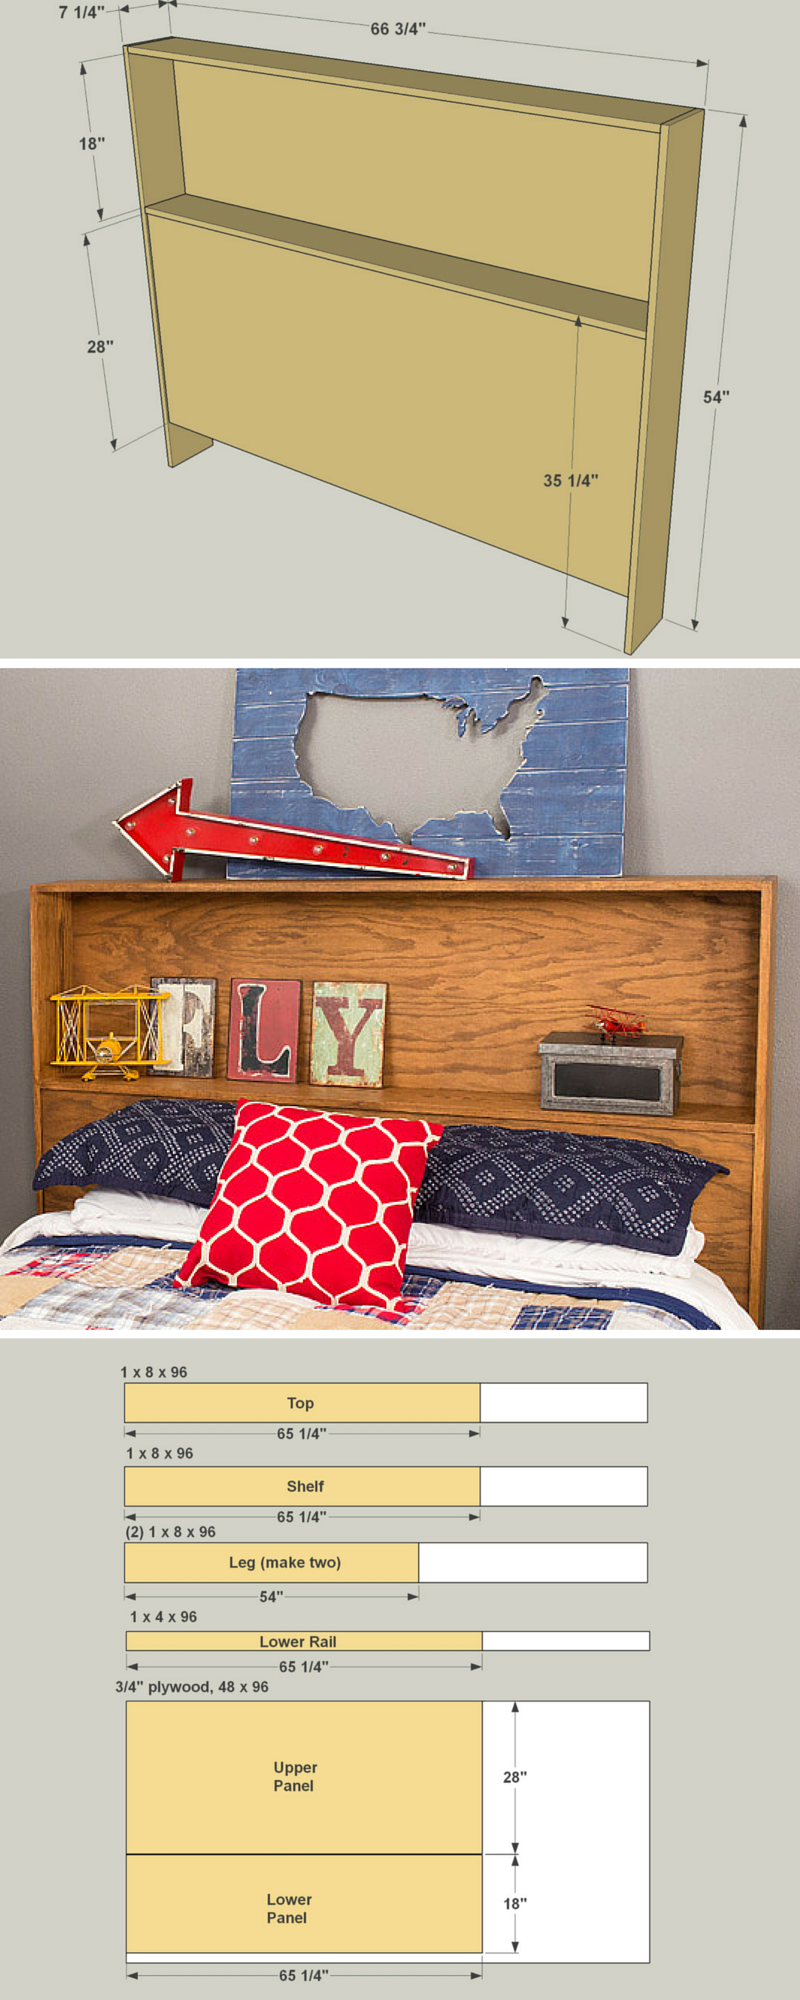 How To Build A DIY Storage Headboard | Free Printable Project Plans On  Buildsomething.com